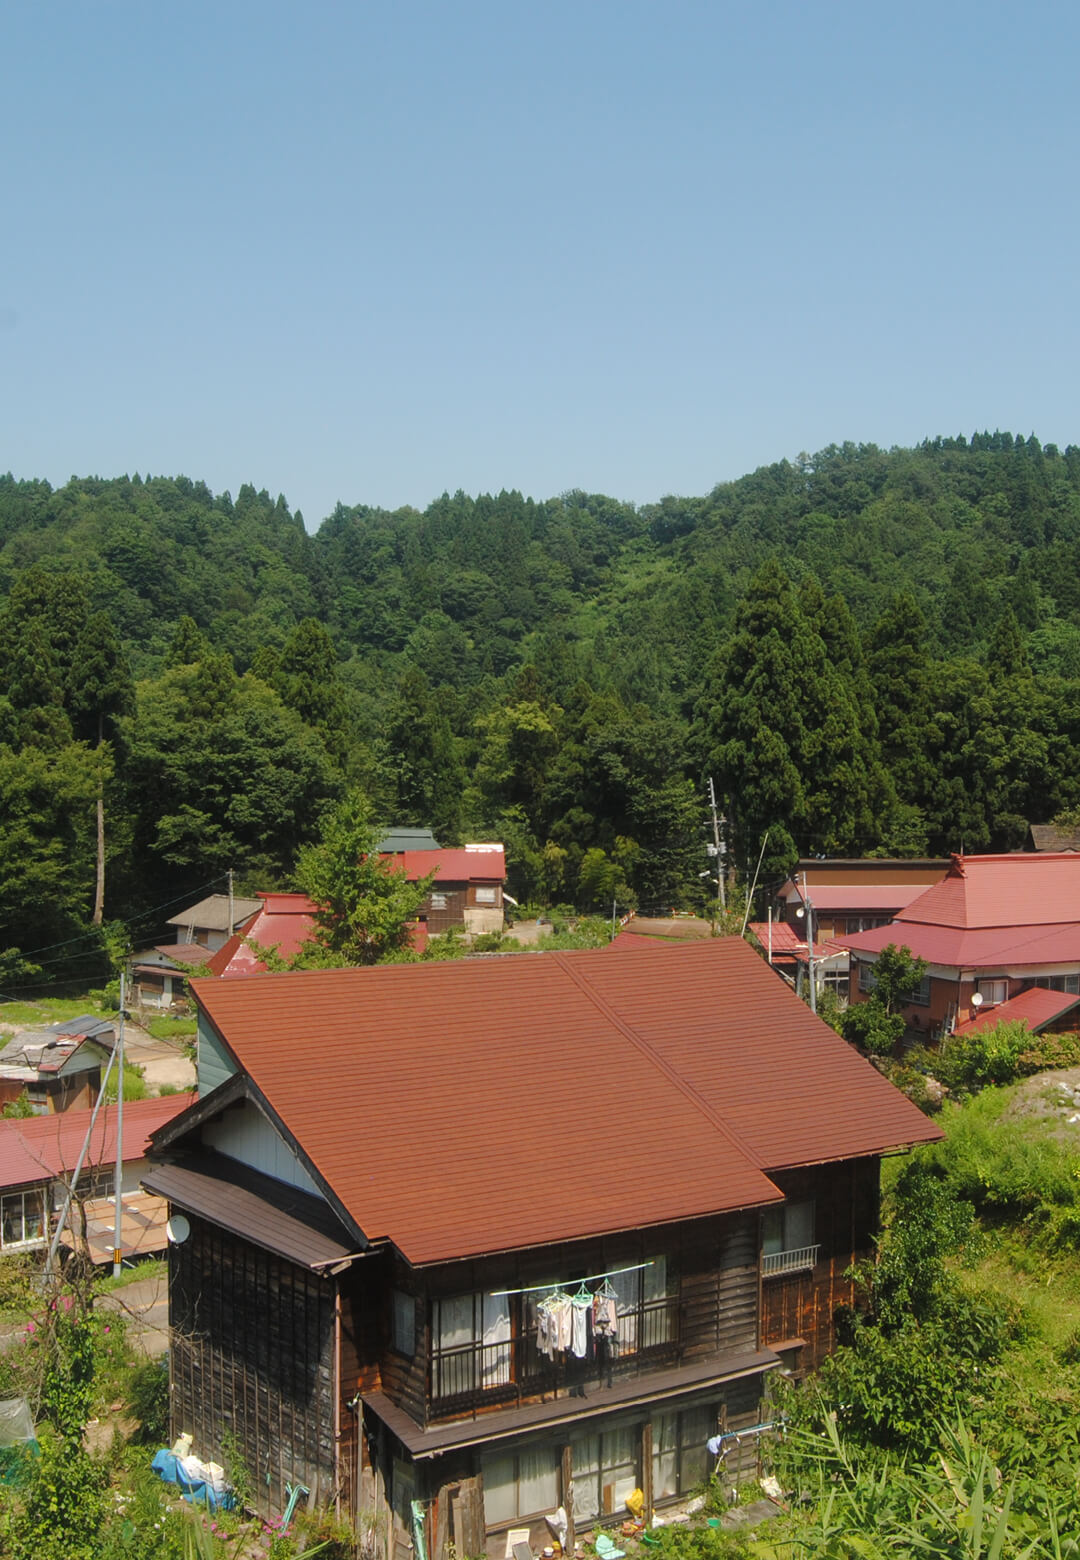 The town of Koshirakura | Landscape workshop in Koshirakura| Japan | STIRworld